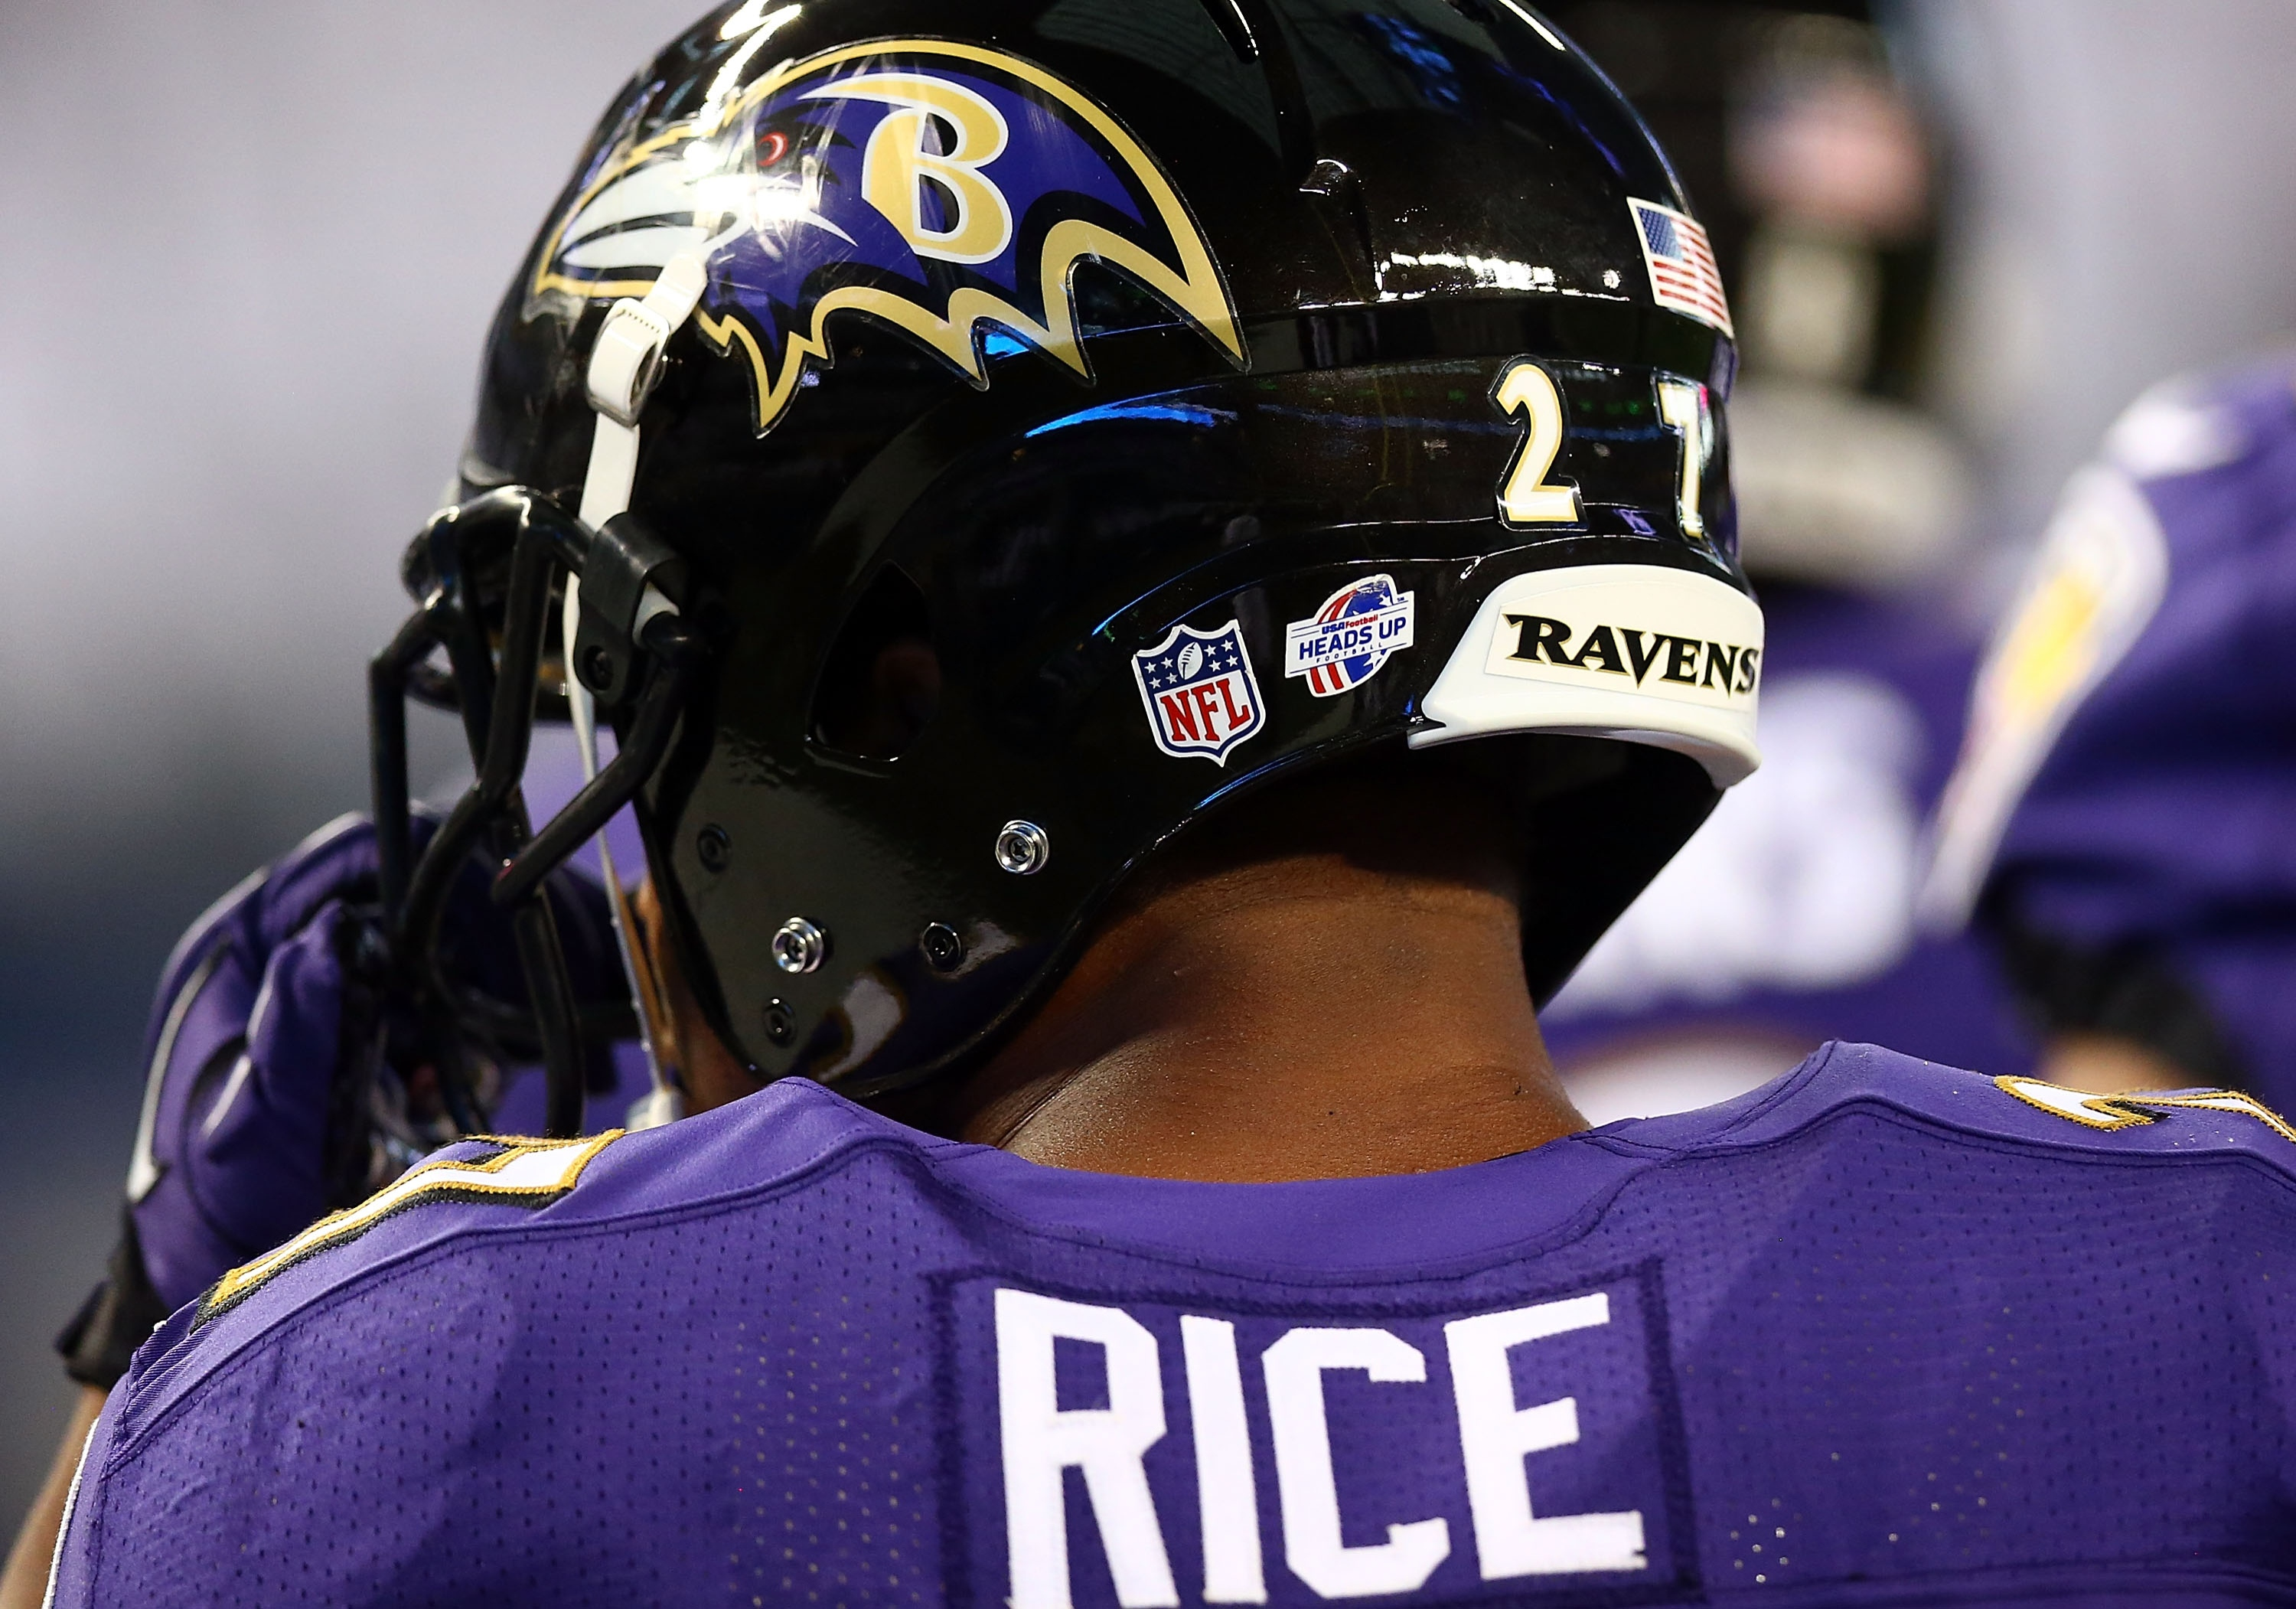 ARLINGTON, TX - AUGUST 16: Ray Rice #27 of the Baltimore Ravens sits on the bench against the Dallas Cowboys in the first half of their preseason game at AT&T Stadium on August 16, 2014 in Arlington, Texas. (Photo by Ronald Martinez/Getty Images)